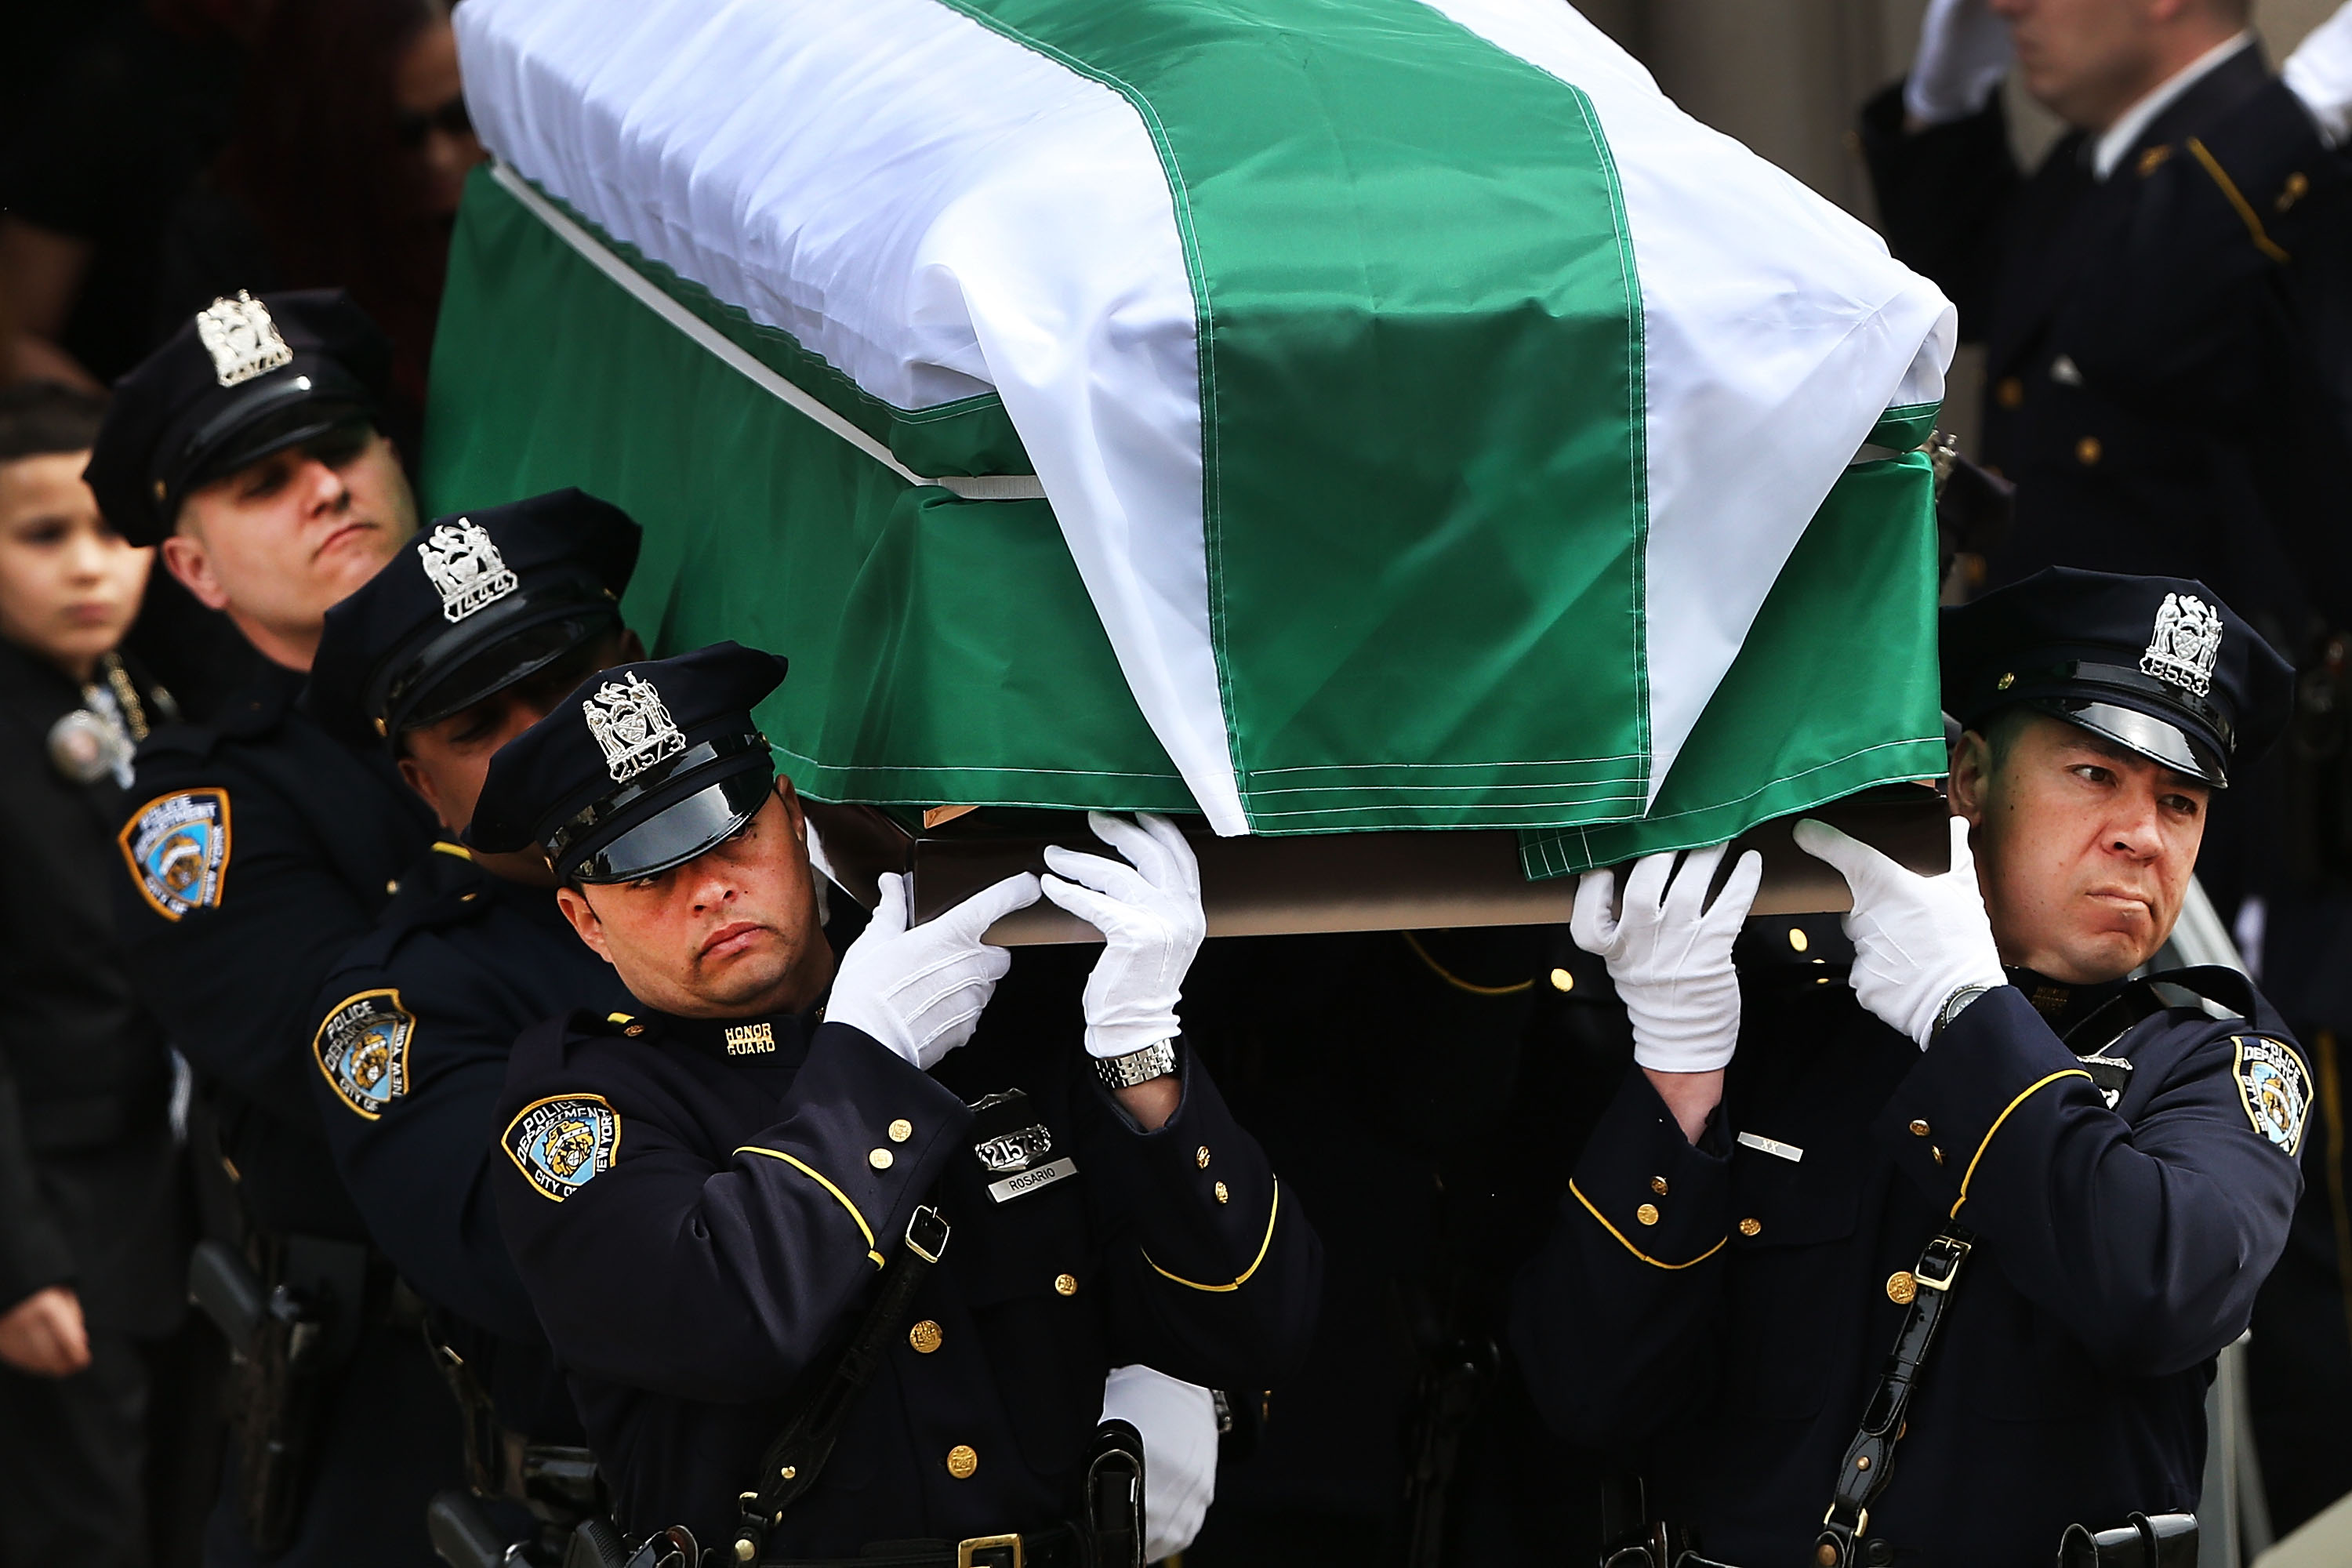 A funeral for a police officer in April. (Photo by Spencer Platt/Getty Images)